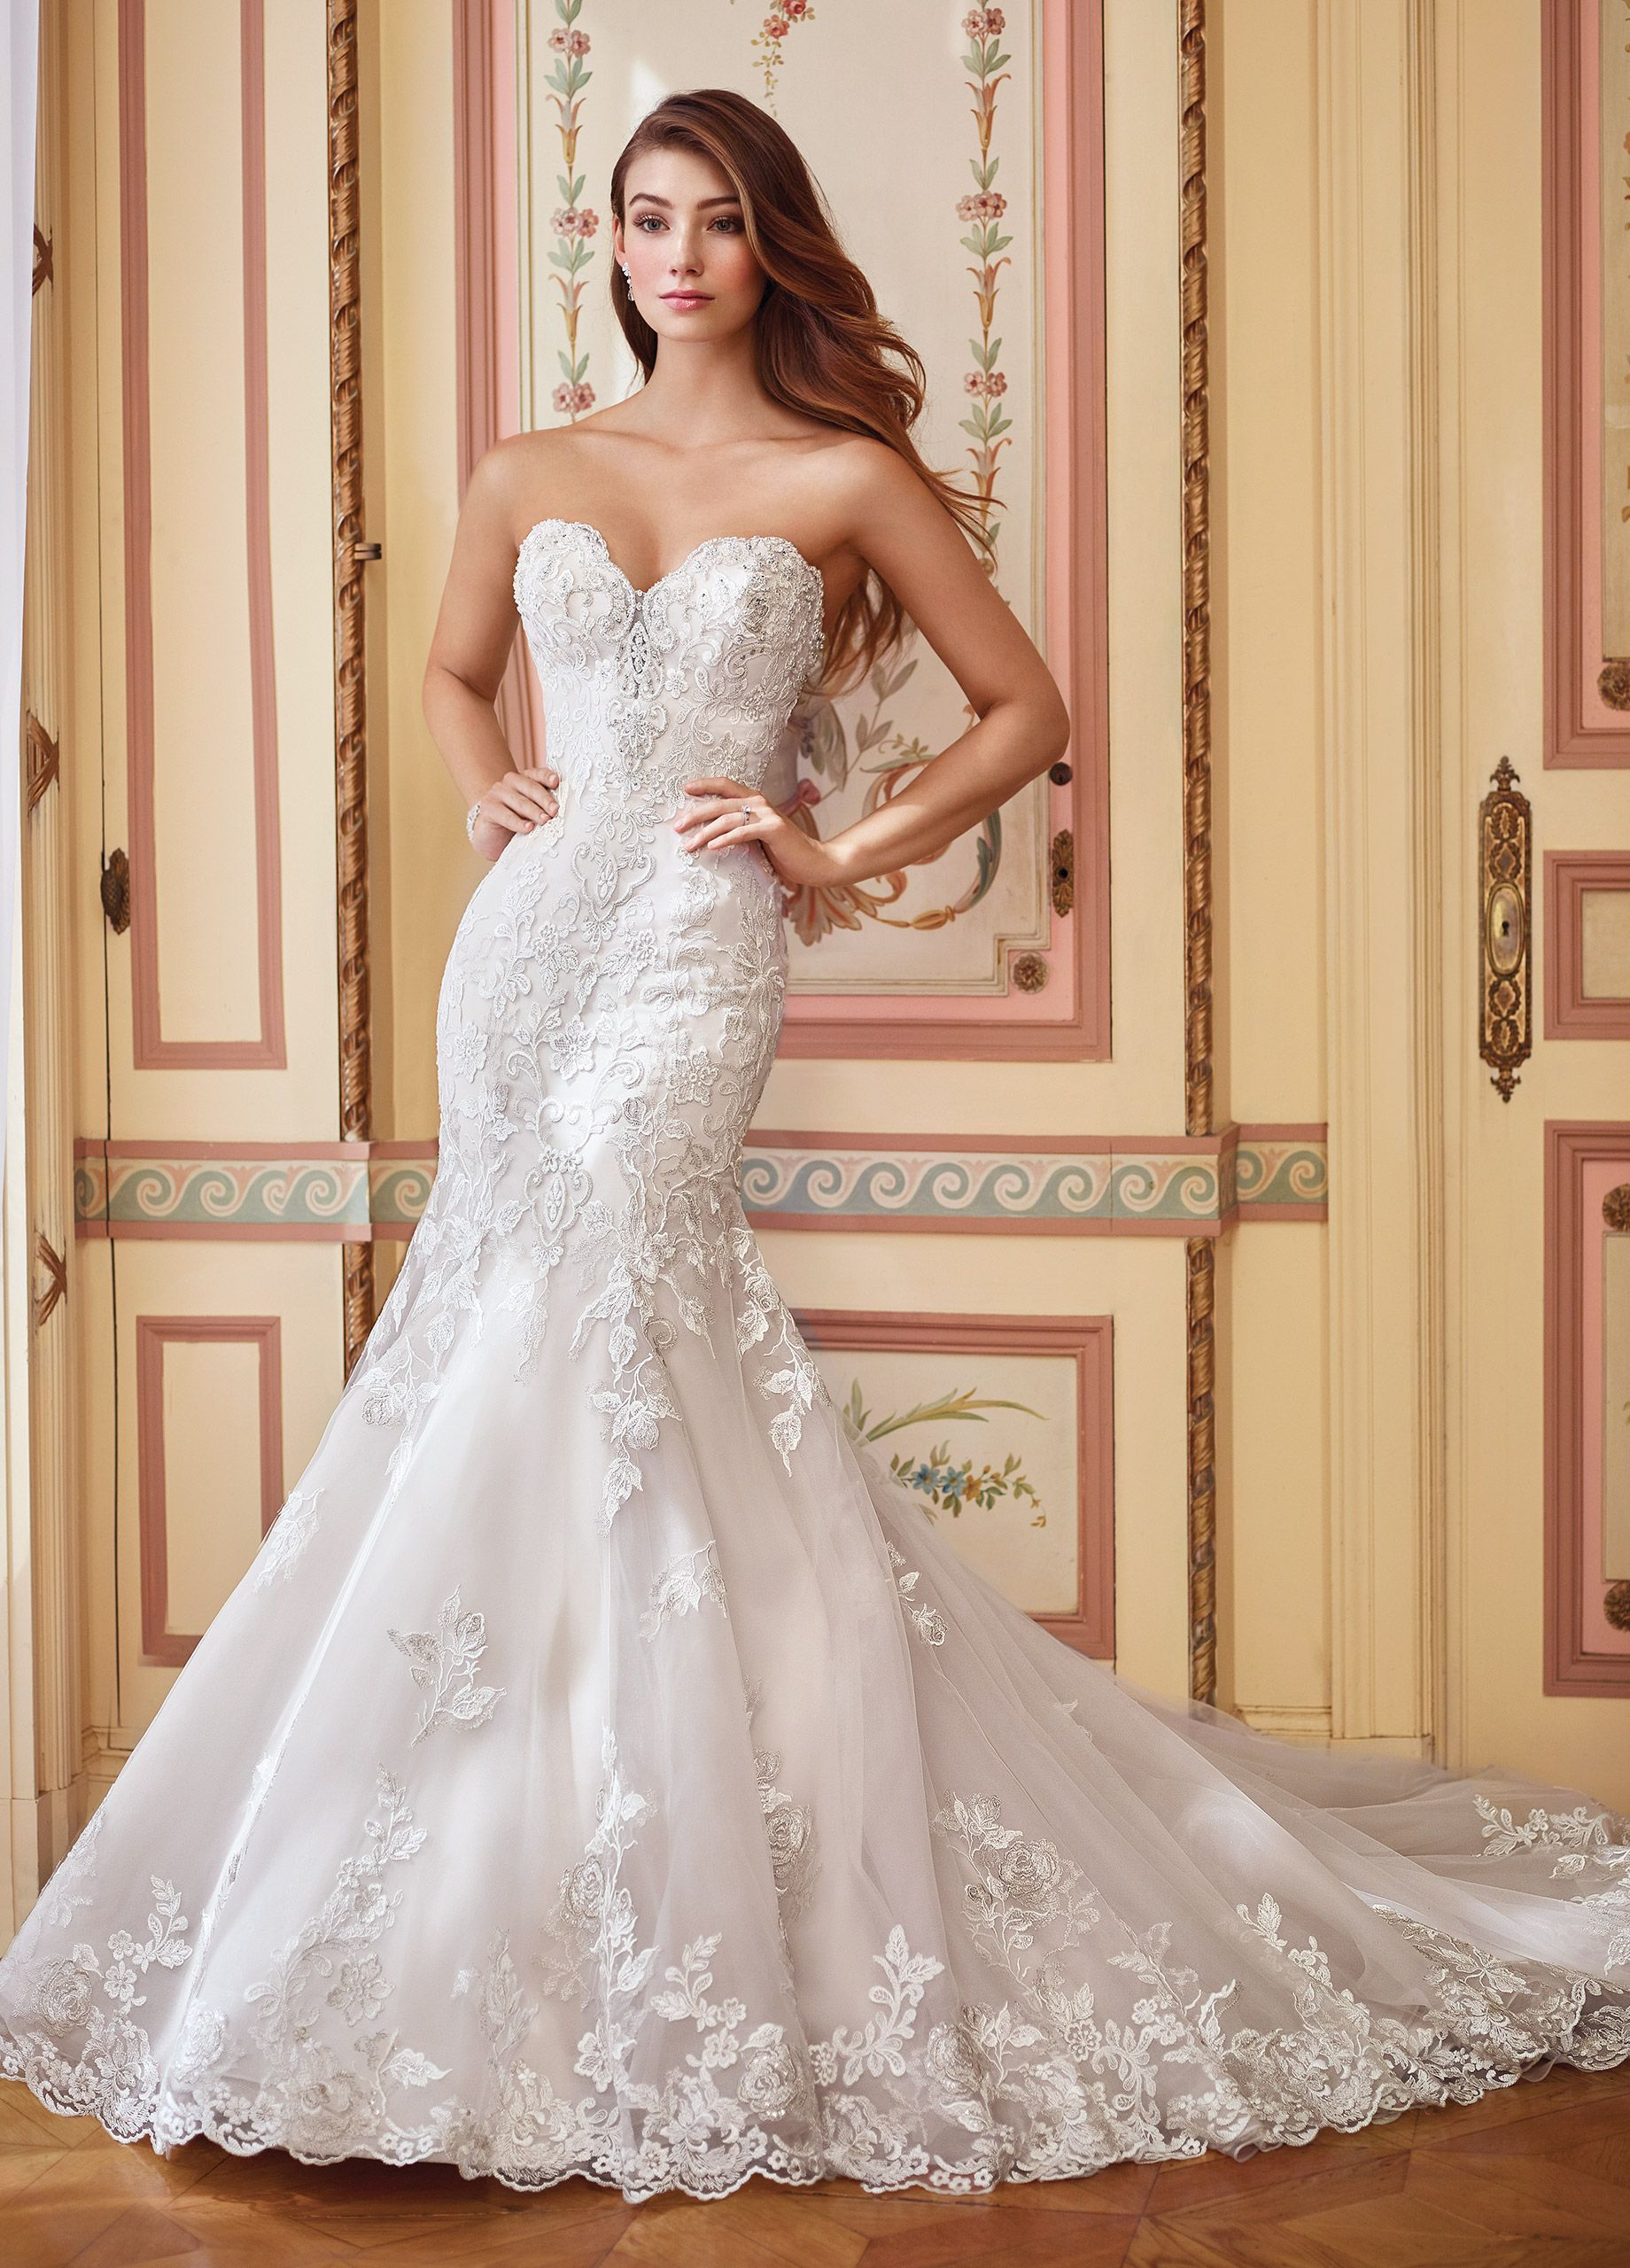 bce6652efc78 mon cheri bridals 117284 Danae - Strapless embroidered Schiffli lace on  tulle over organza and satin mermaid gown with plunging scalloped  sweetheart ...